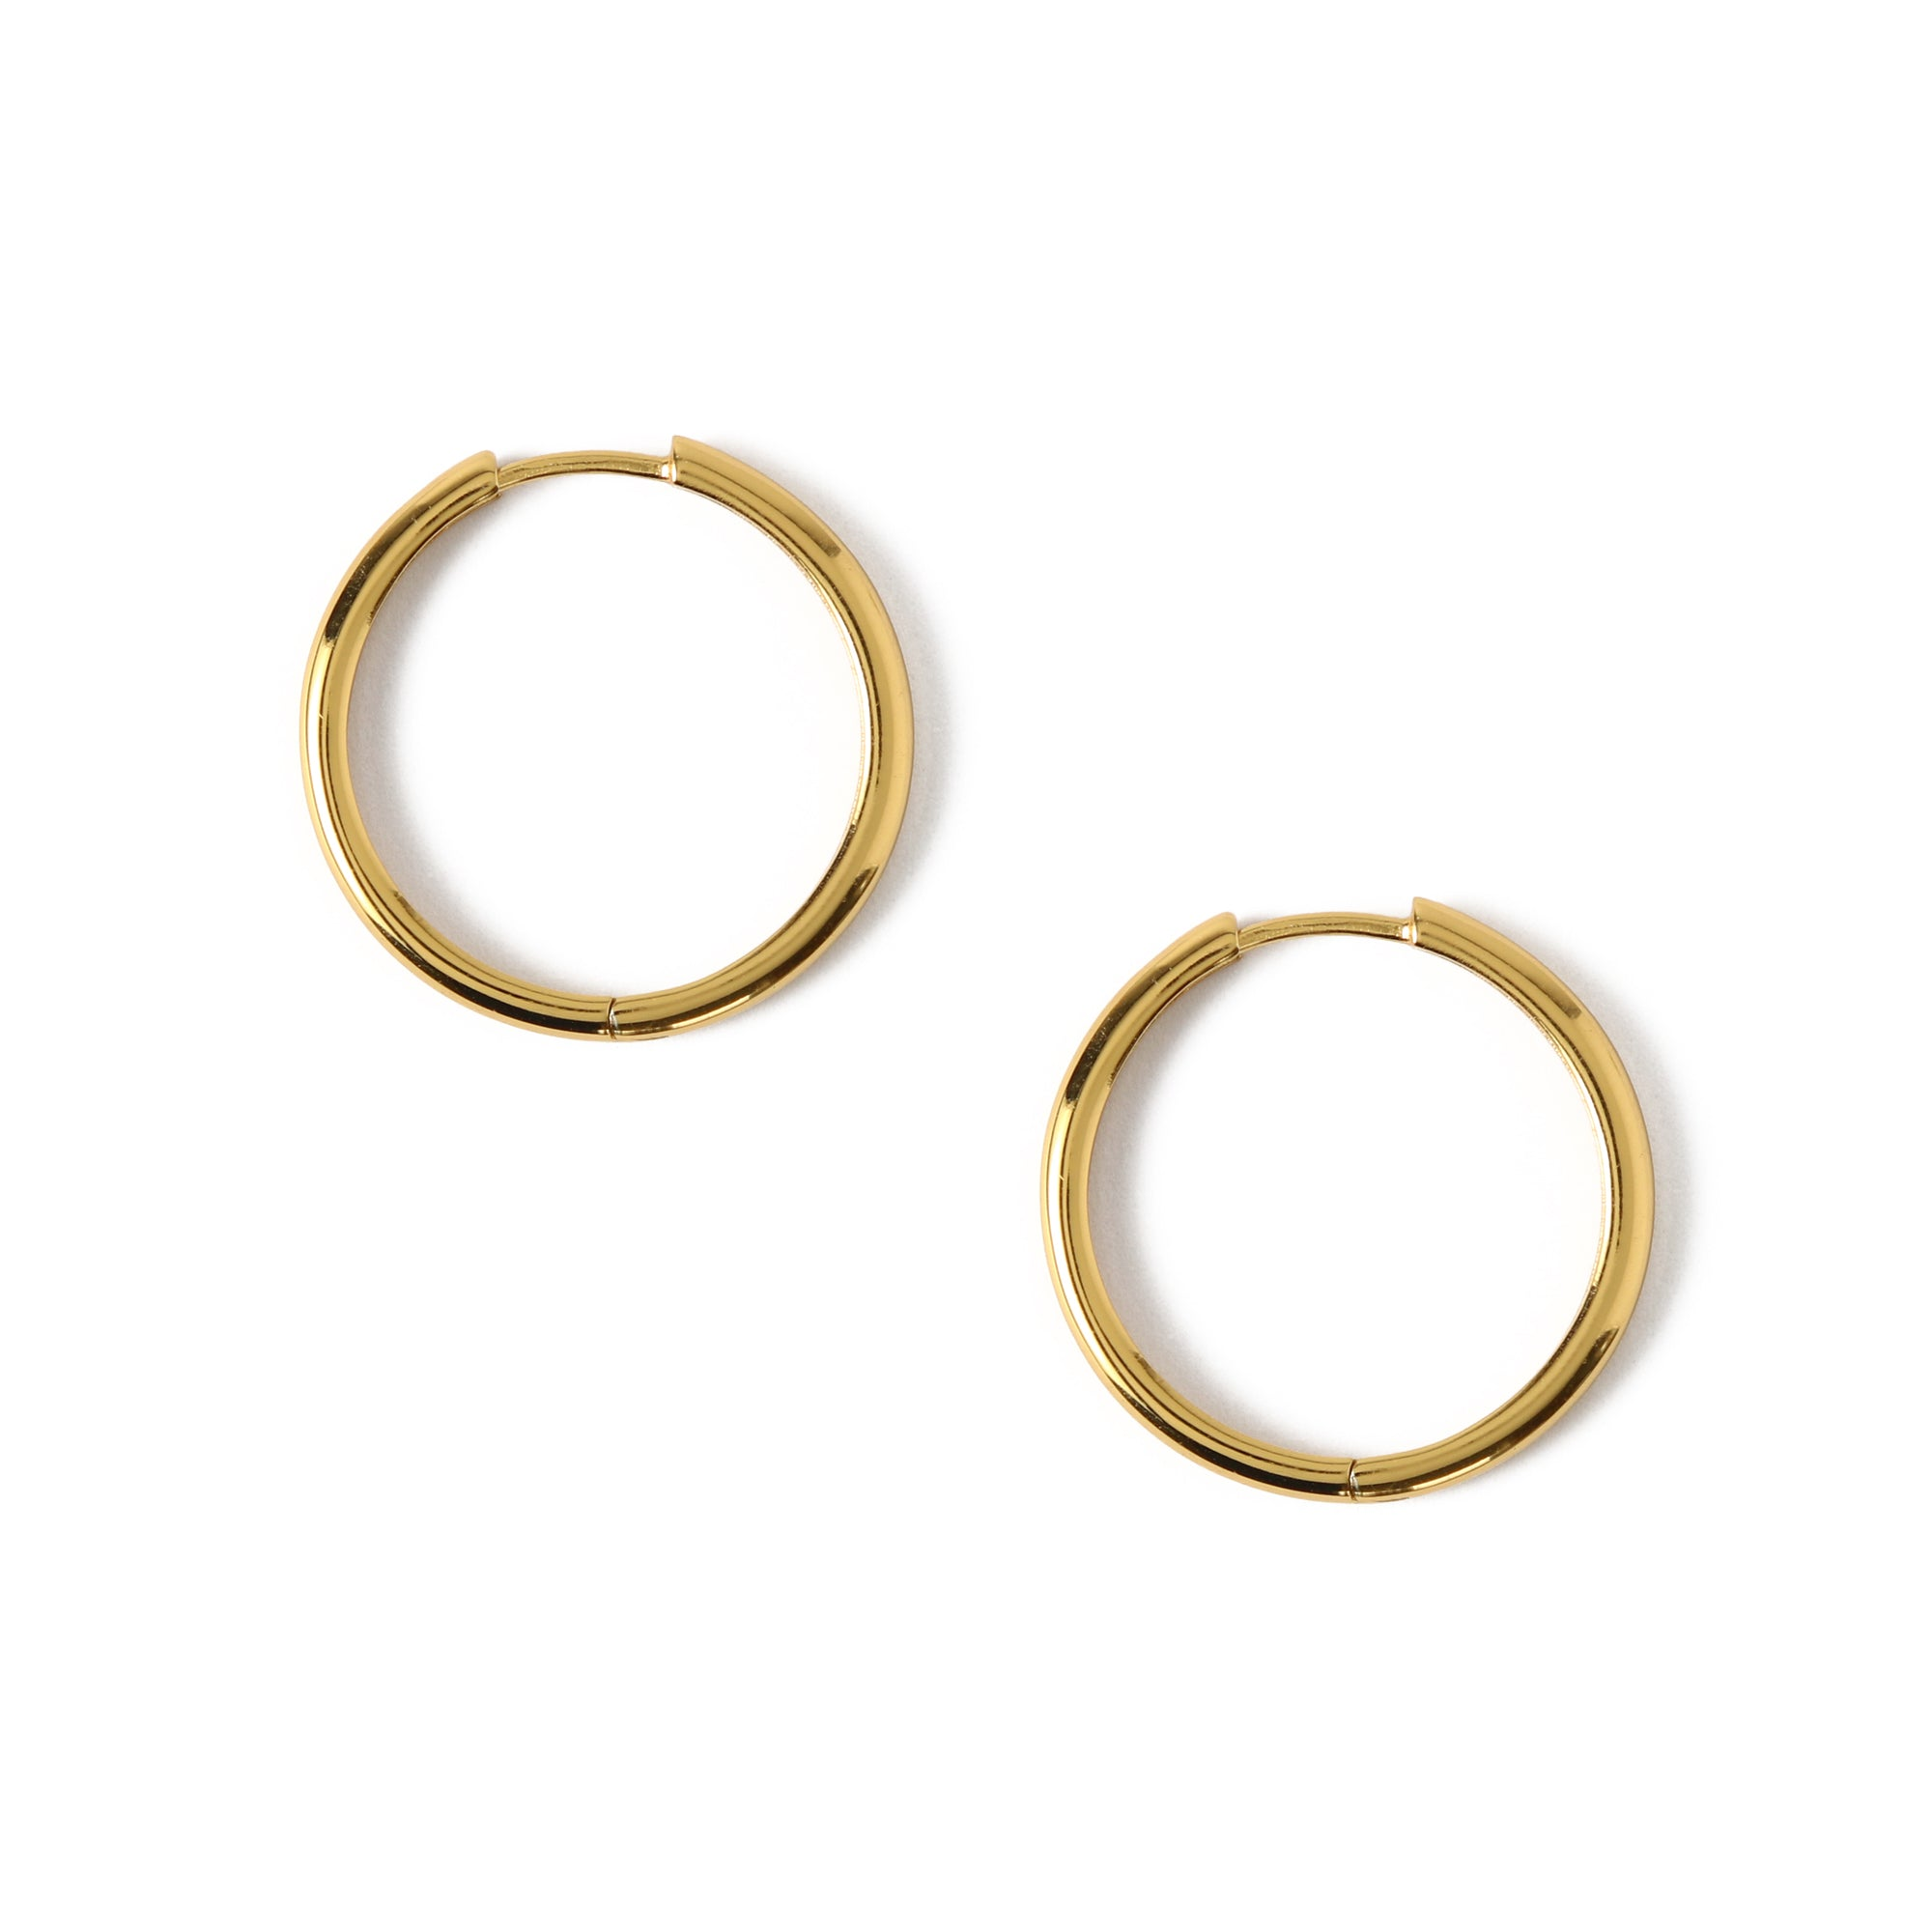 LUXE Simple Medium Hoop Earrings